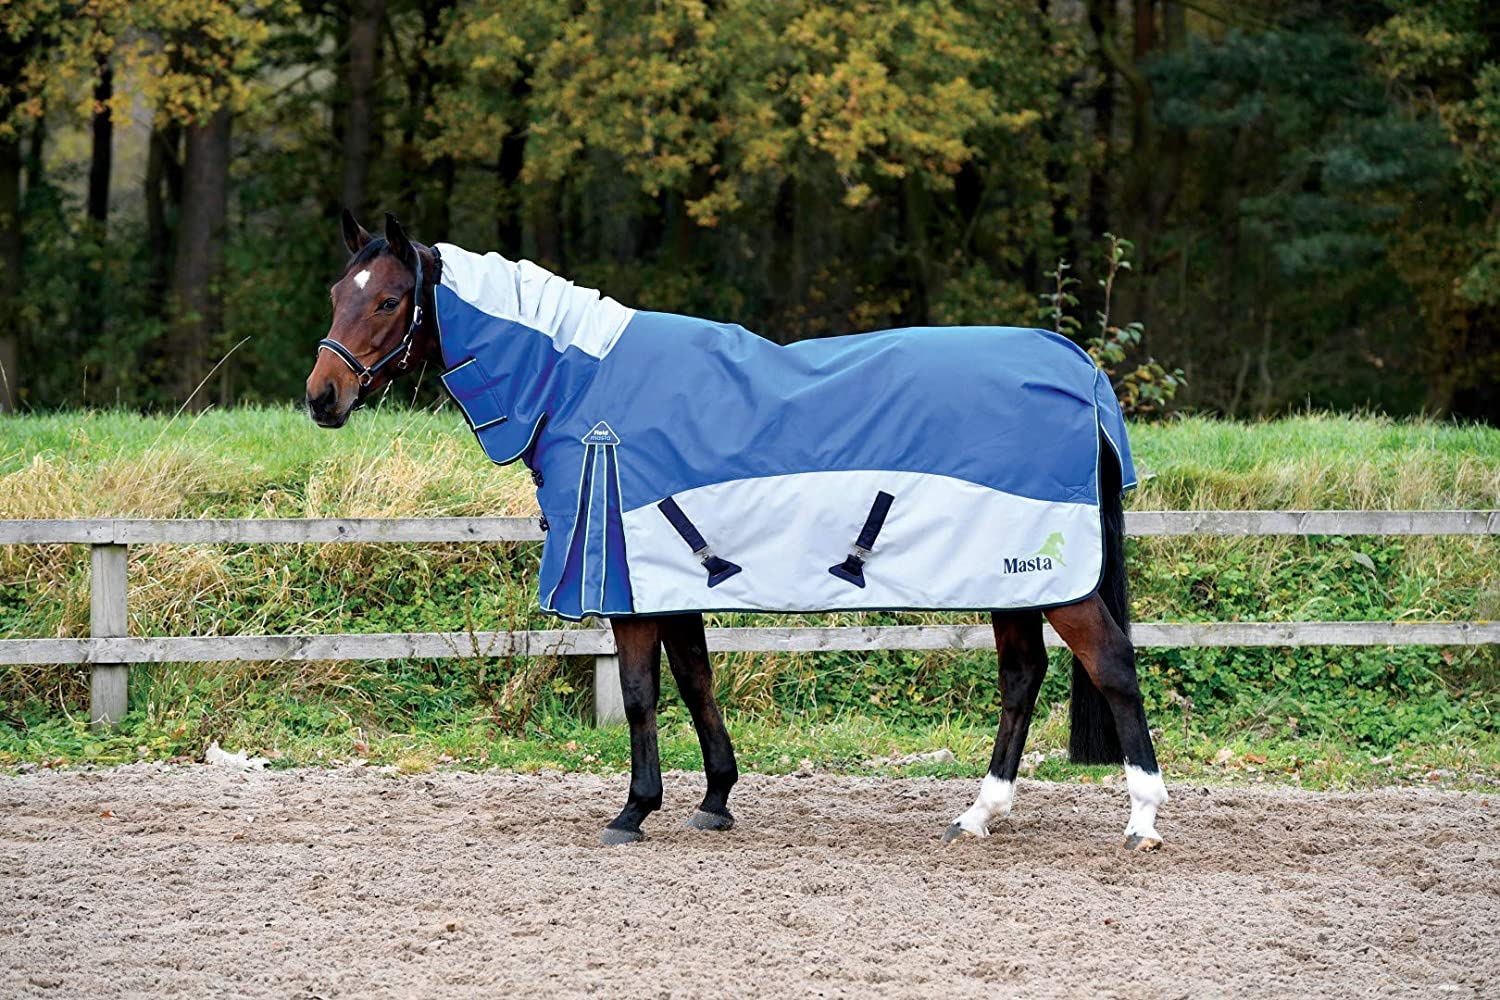 Royal bluee 6 ft 9-Inch Royal bluee 6 ft 9-Inch Masta Field Fixed Neck Turnout Rug